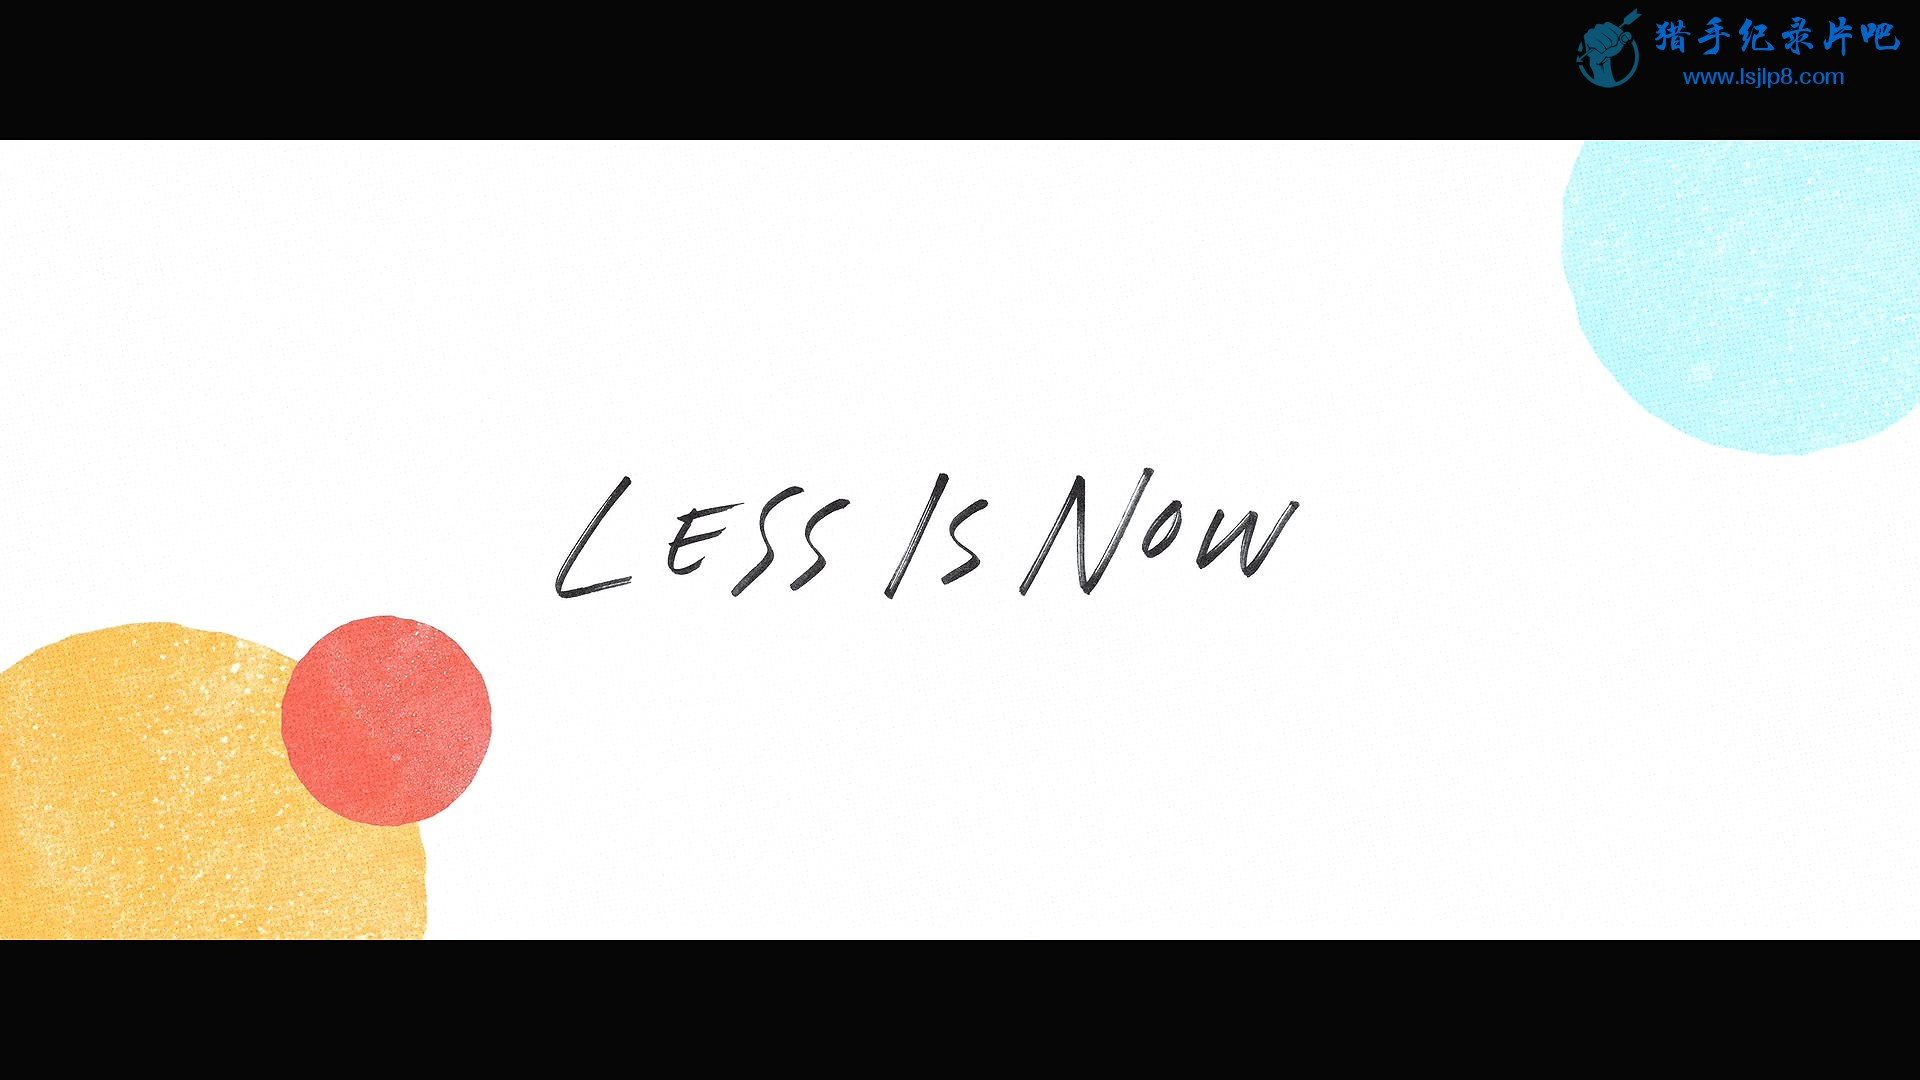 The.Minimalists.Less.Is.Now.2021.1080p.NF.jpg